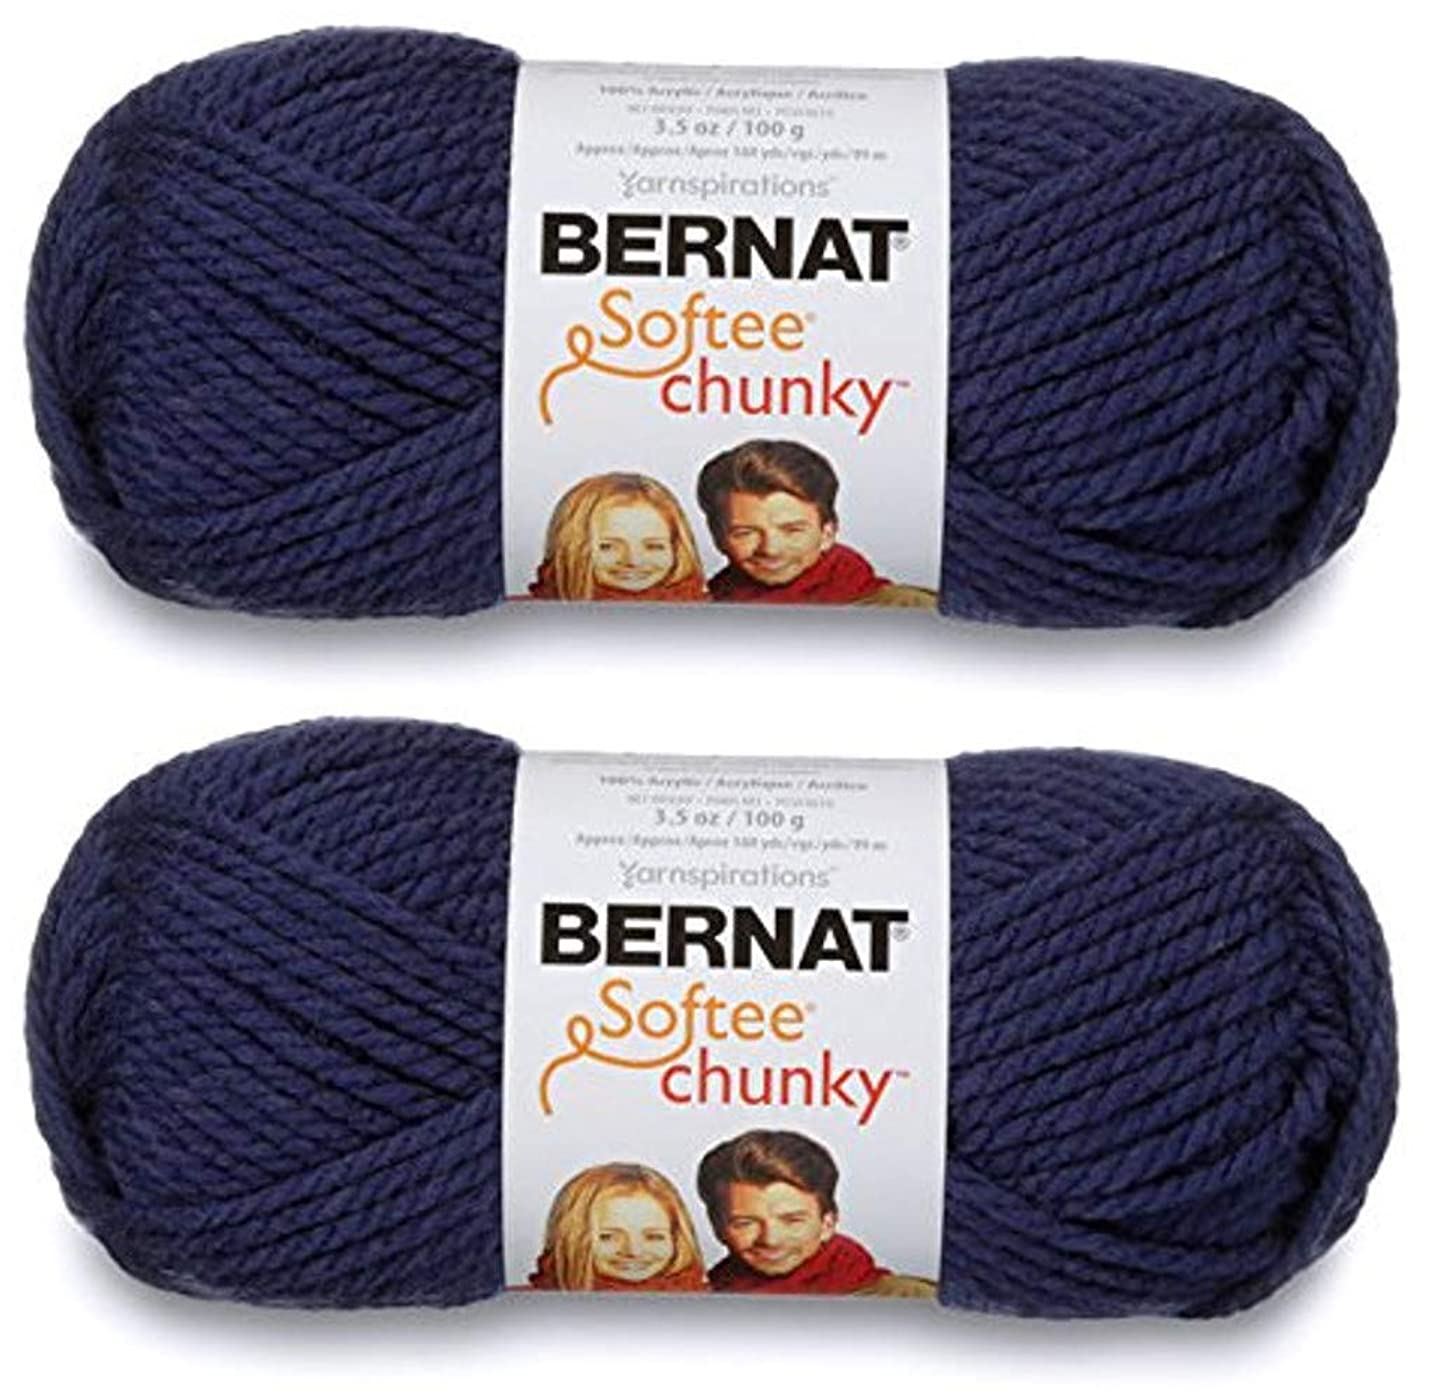 2-Pack - Bernat Softee Chunky Yarn, Faded Denim, Single Ball